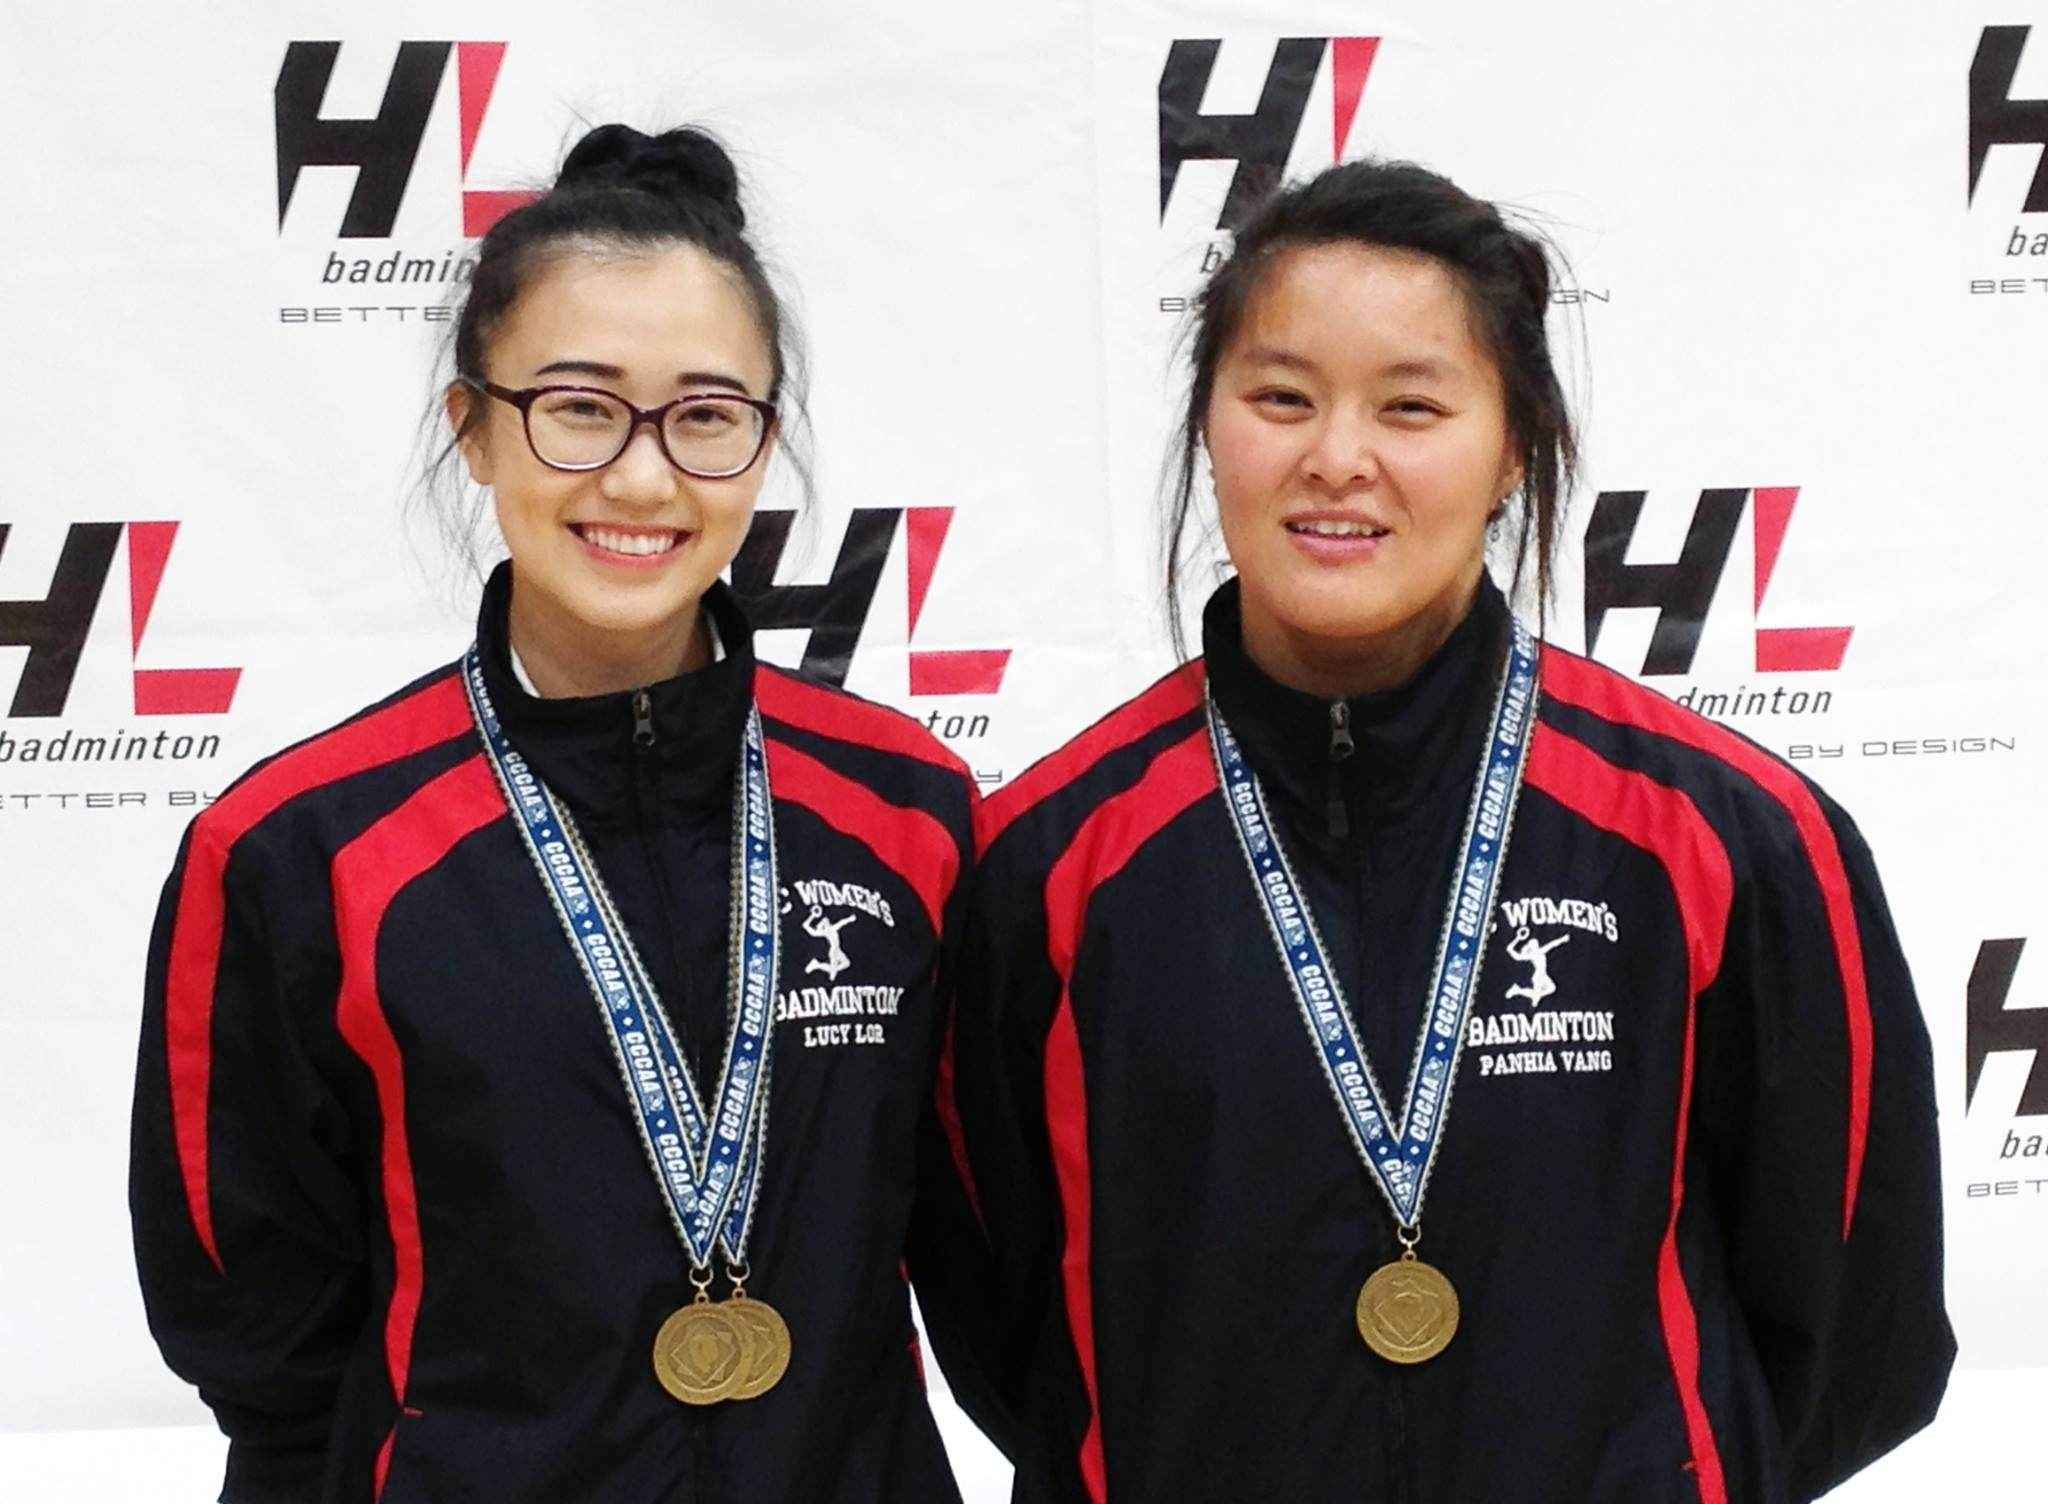 Fresno City College Players Lucy Lor And Panhia Vang Were Named To The Inaugural Badminton Coaches Association Cccbca All Ameri Fresno City City College Fresno